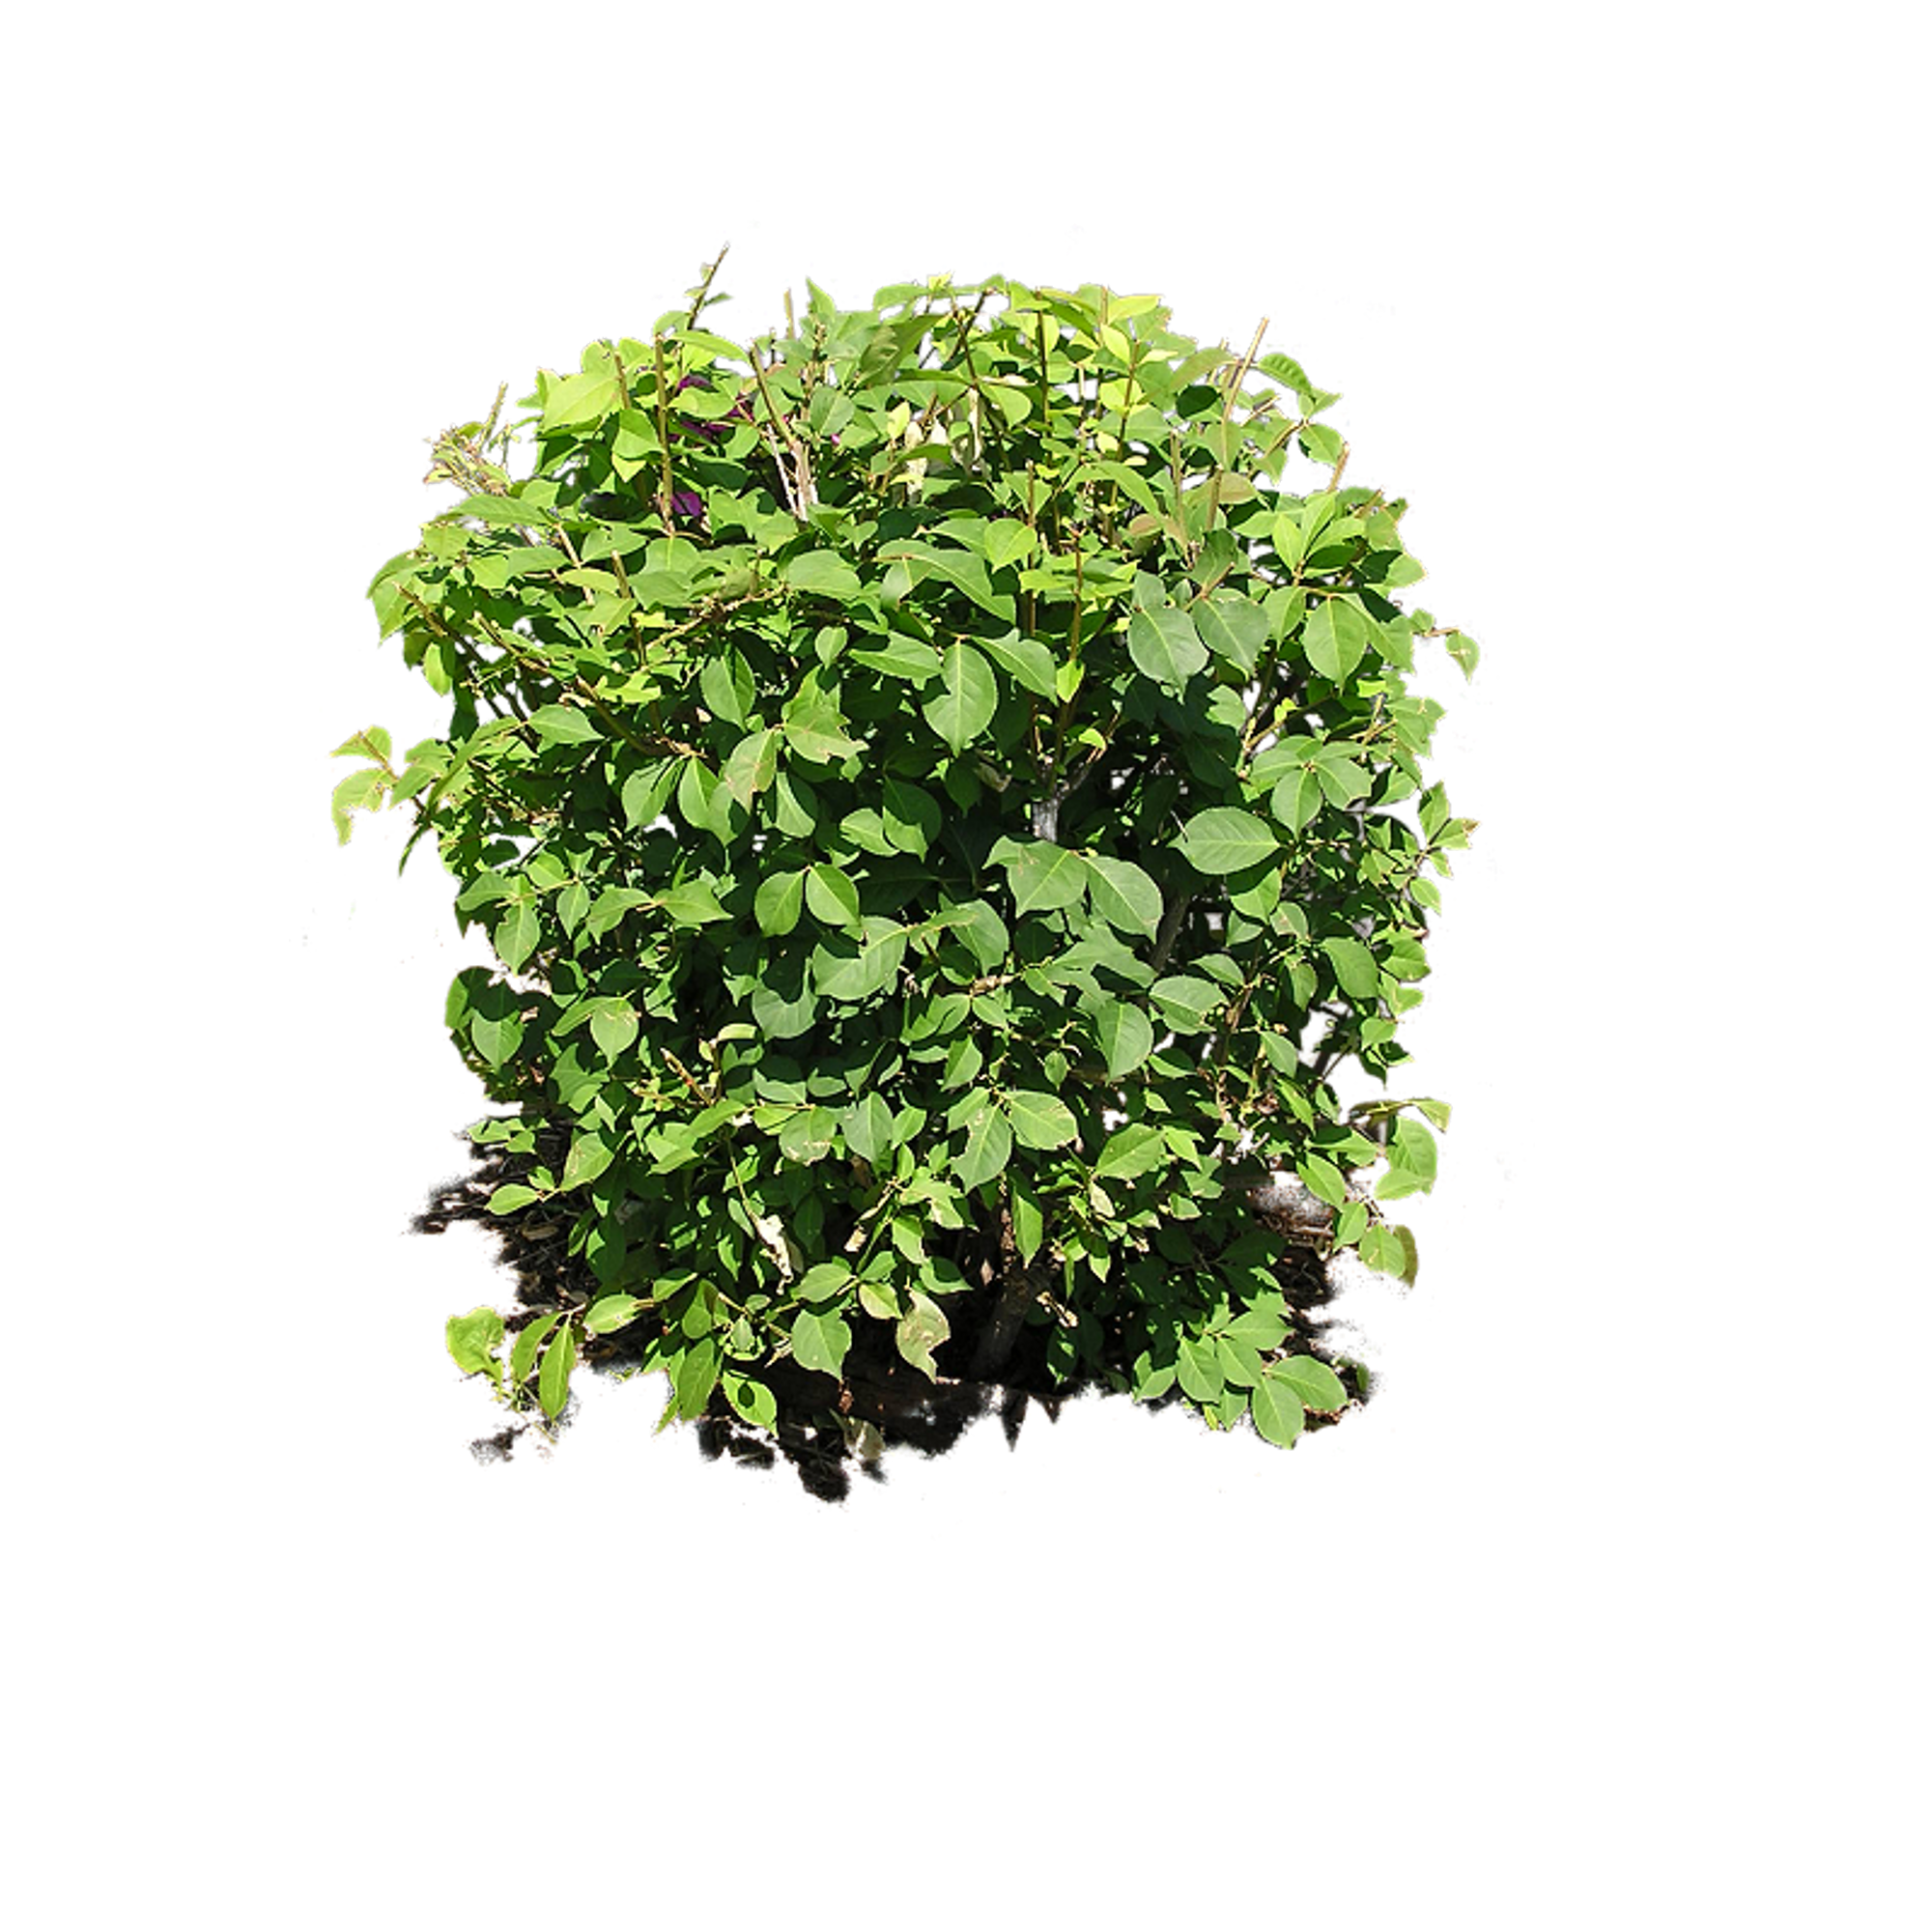 vector transparent download Rose shrubbery free on. Bush clipart